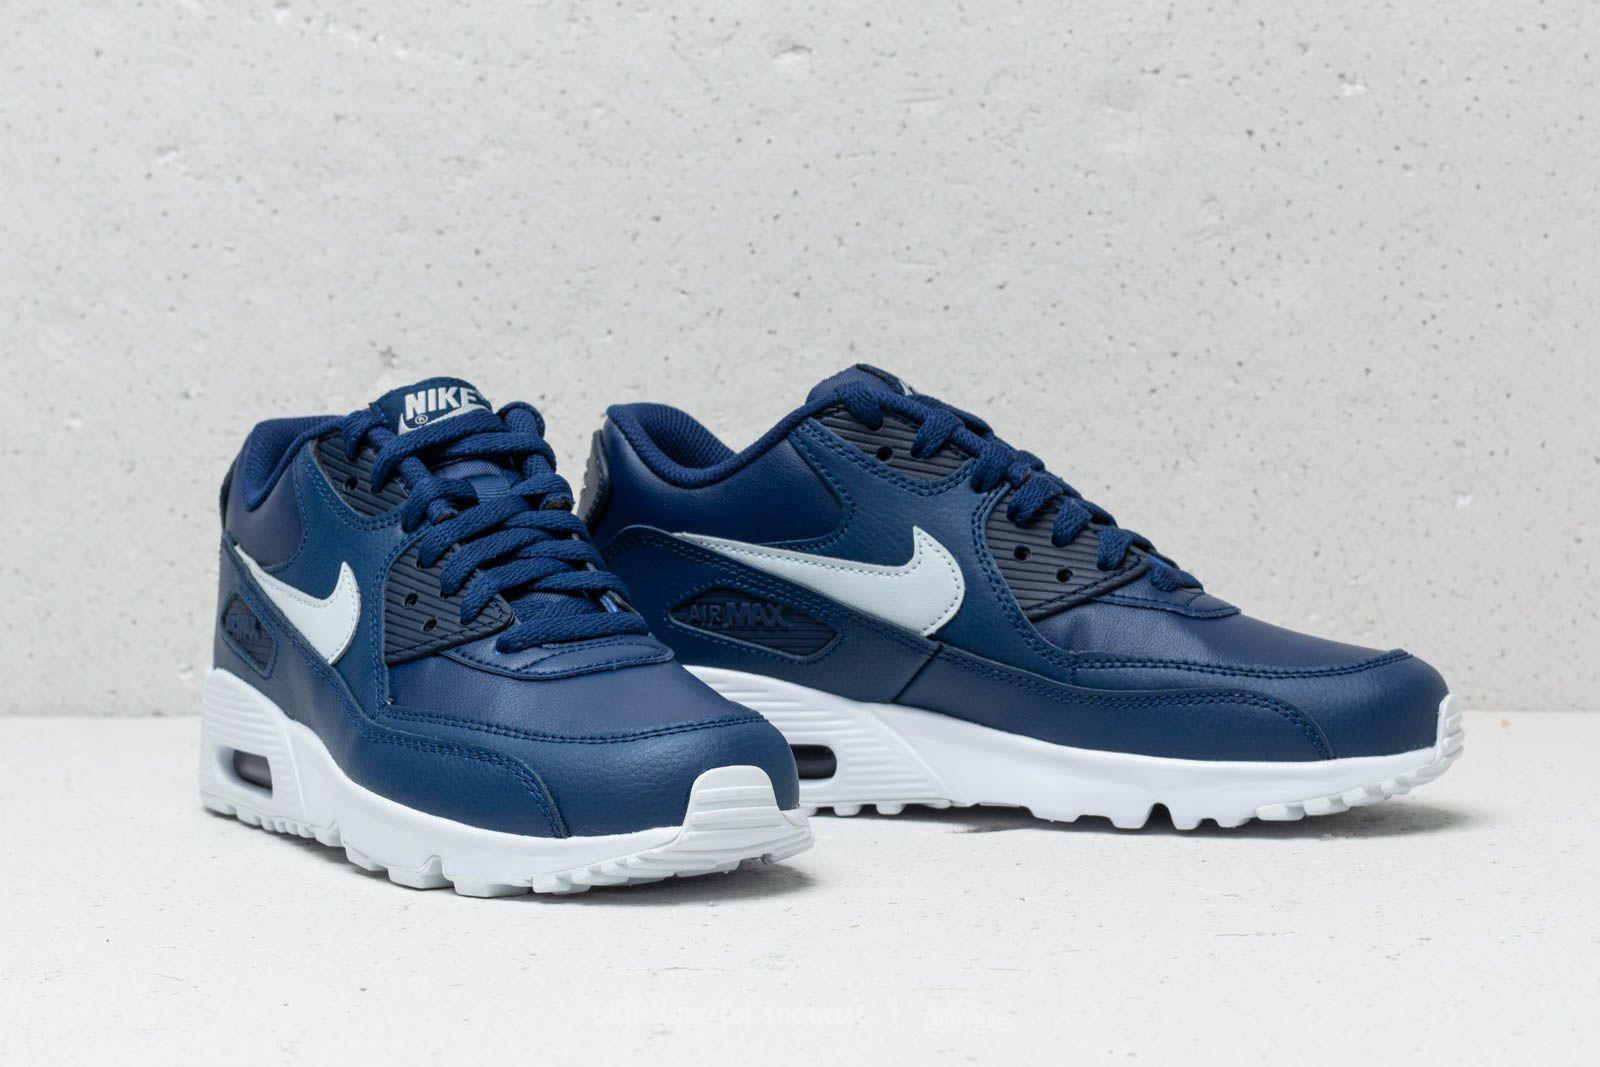 save off 4ca16 4d01a Nike Air Max 90 Ltr (gs) Blue Void  Pure Platinum-white in Blue - Lyst